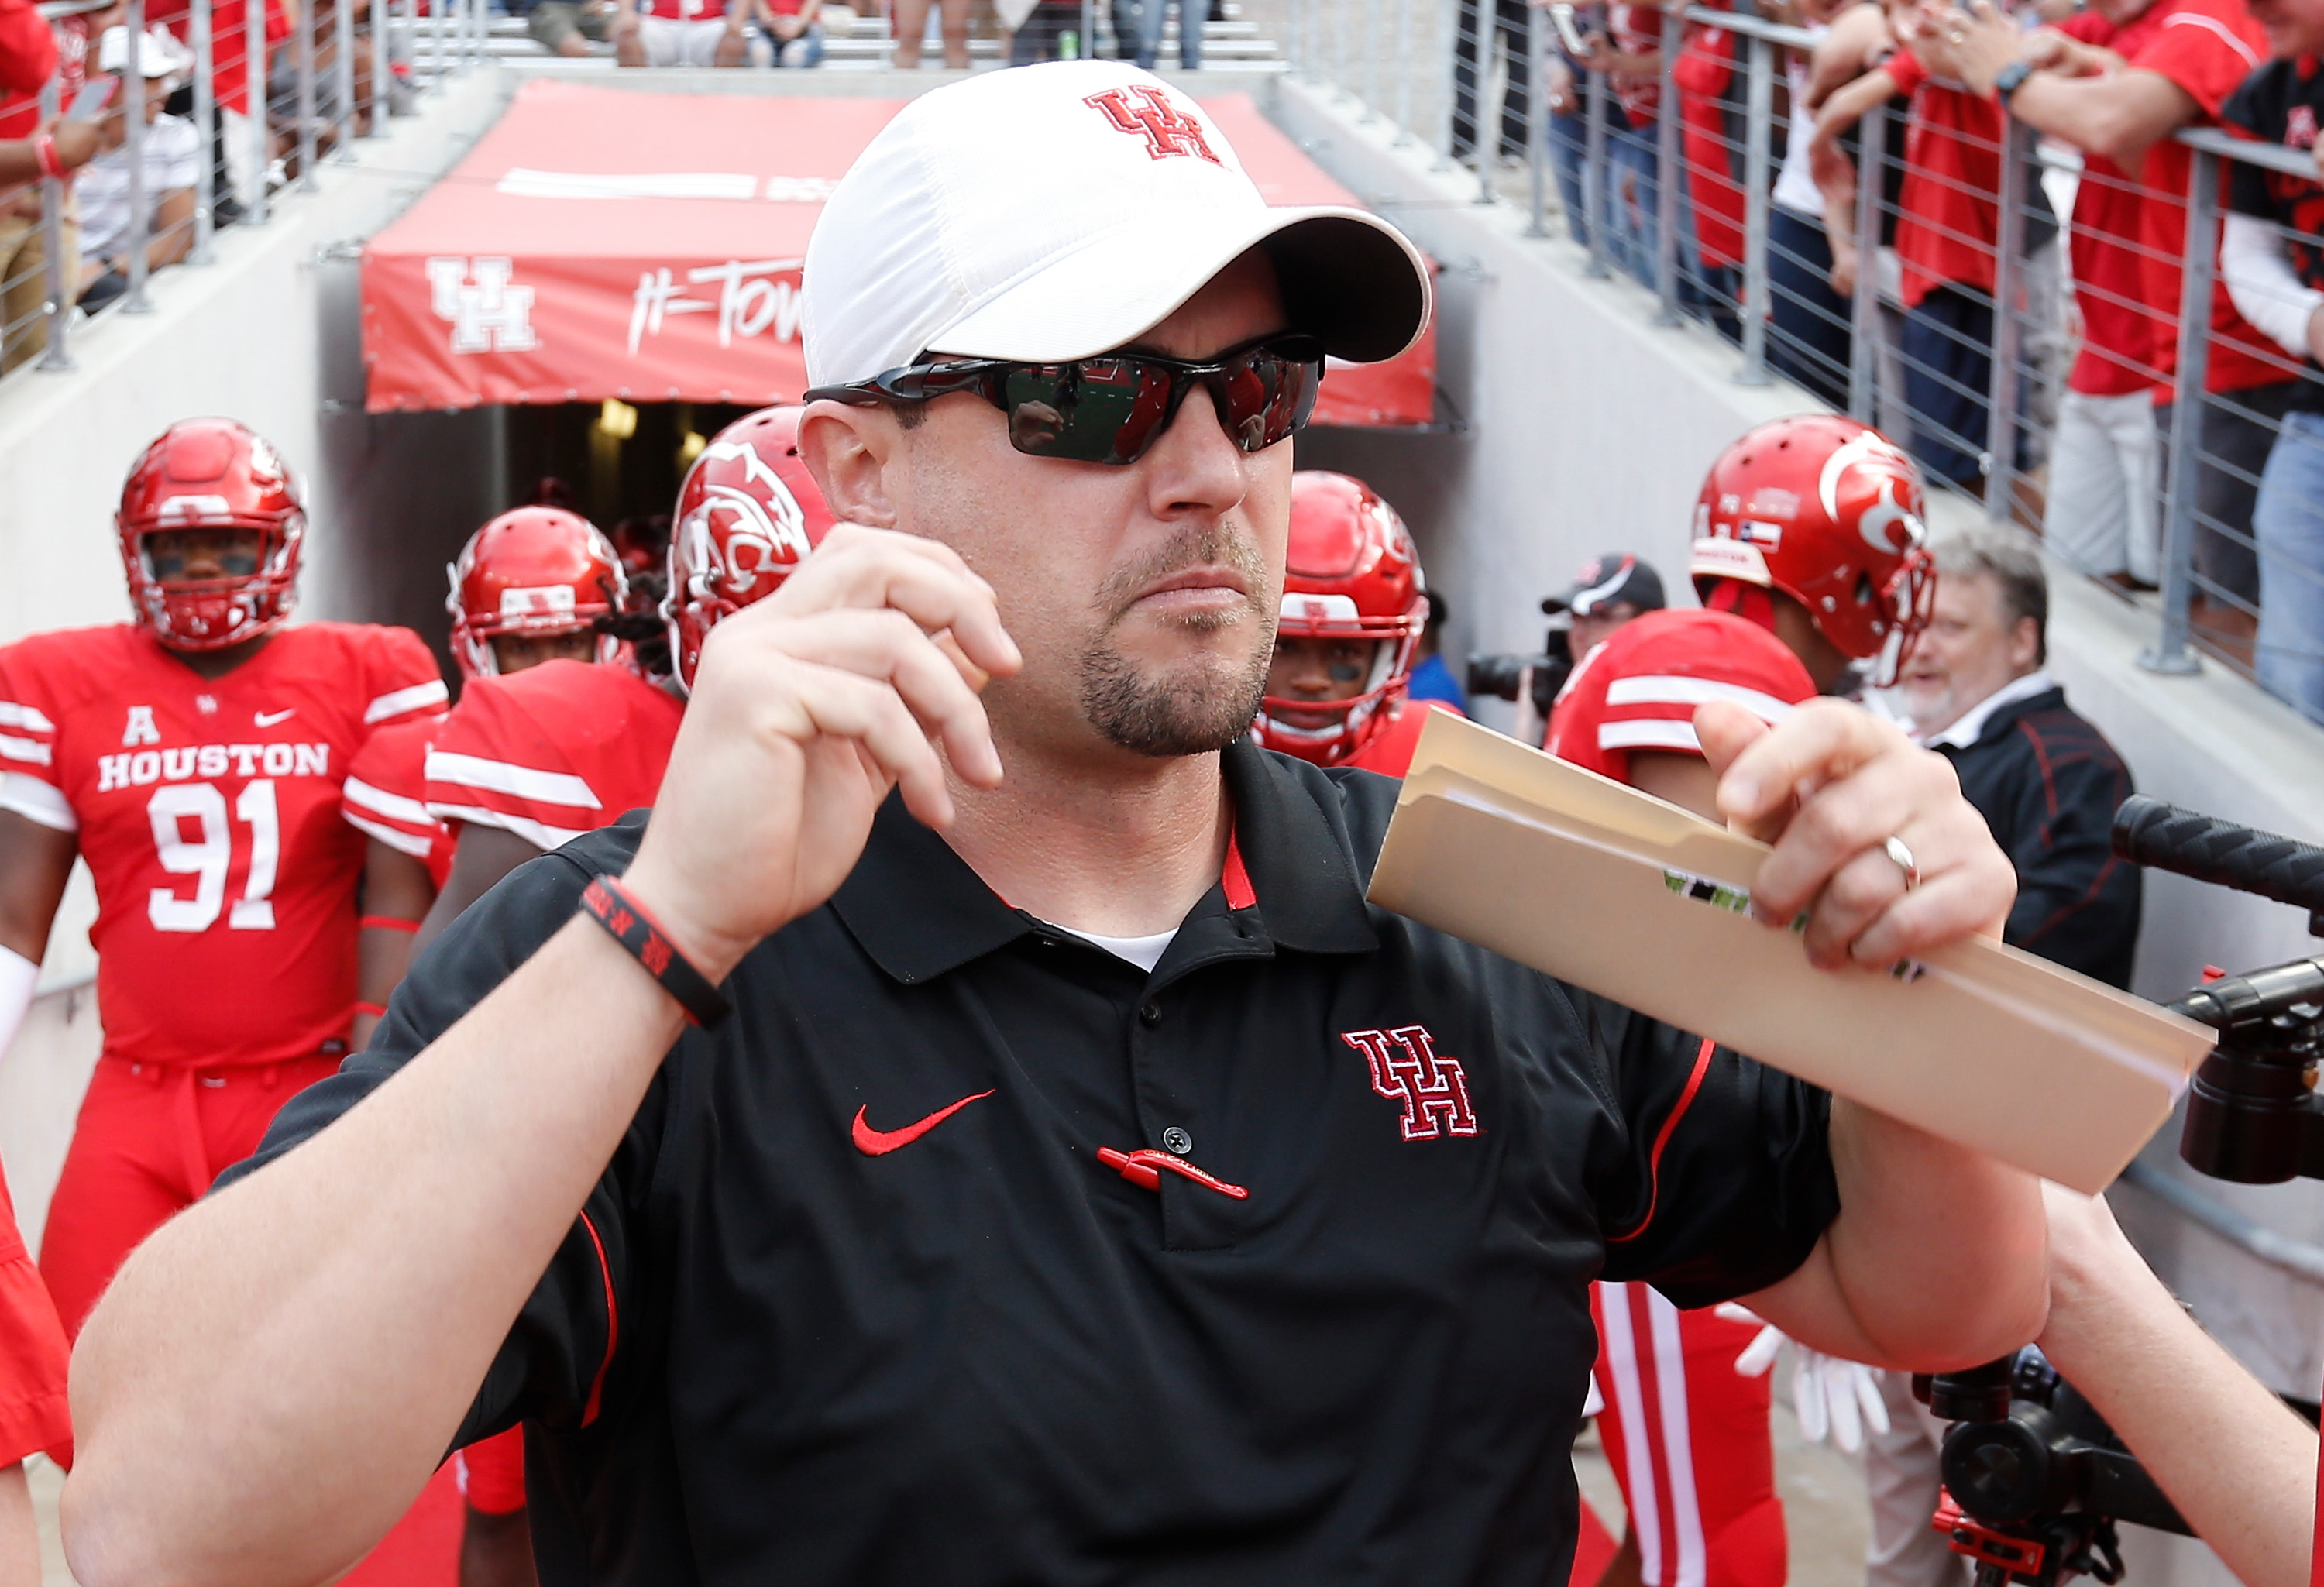 Nov 12, 2016; Houston, TX, USA; Houston Cougars head coach Tom Herman is seen before playing against the Tulane Green Wave at TDECU Stadium. Houston won 30 to 18. Mandatory Credit: Thomas B. Shea-USA TODAY Sports